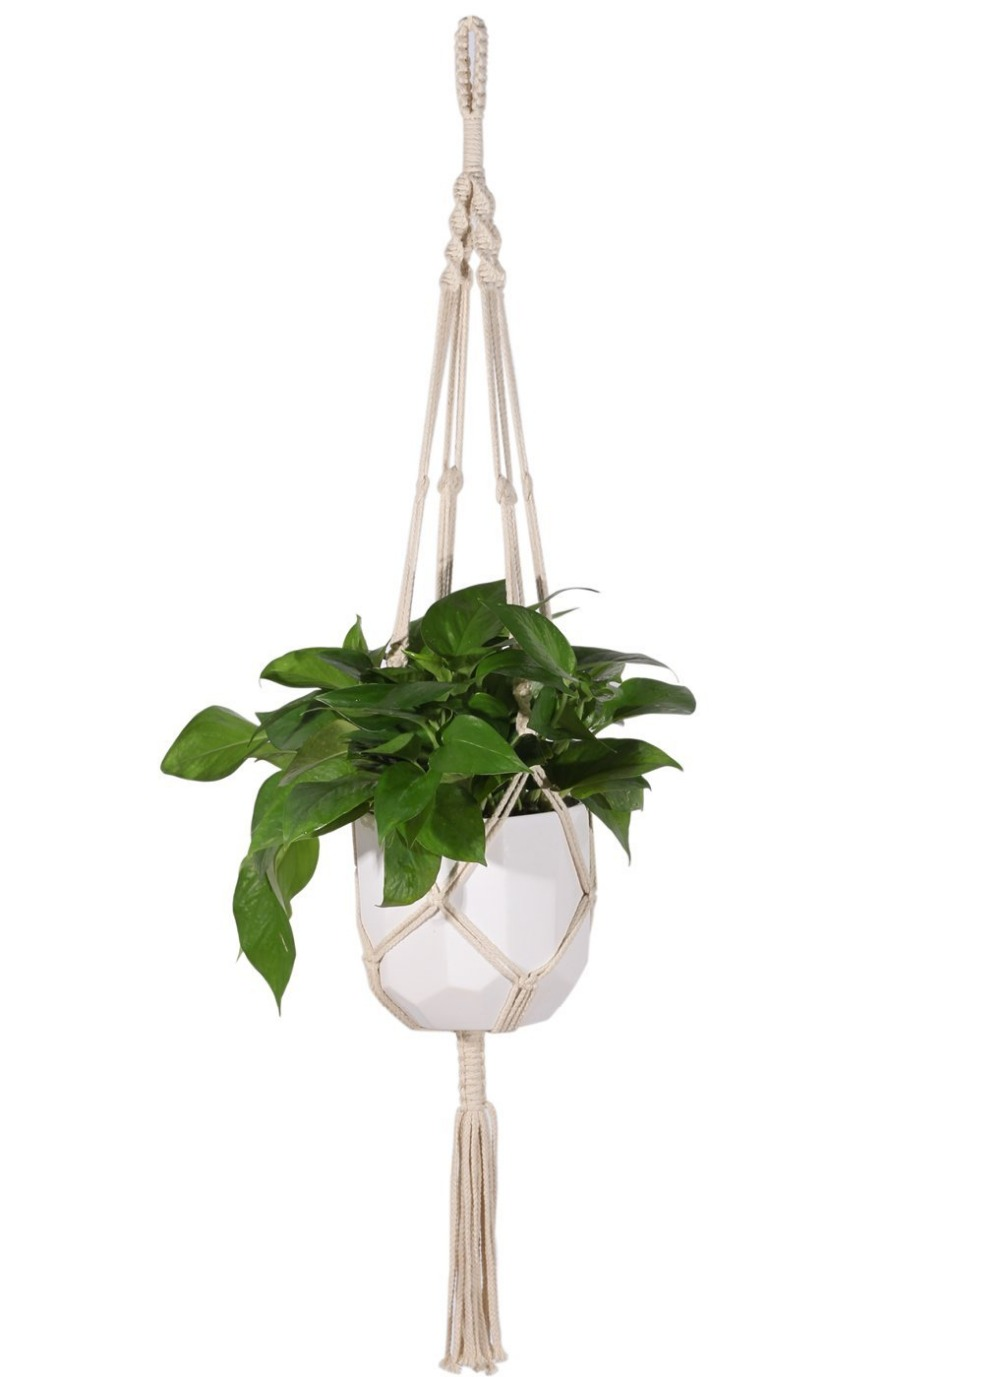 Macrame Plant Hanger Heavy Duty Patio Balcony Deck Ceiling For Round Pots  Indoor Outdoor Decorative Plantsu2013cotton Rope | The Bargain Paradise